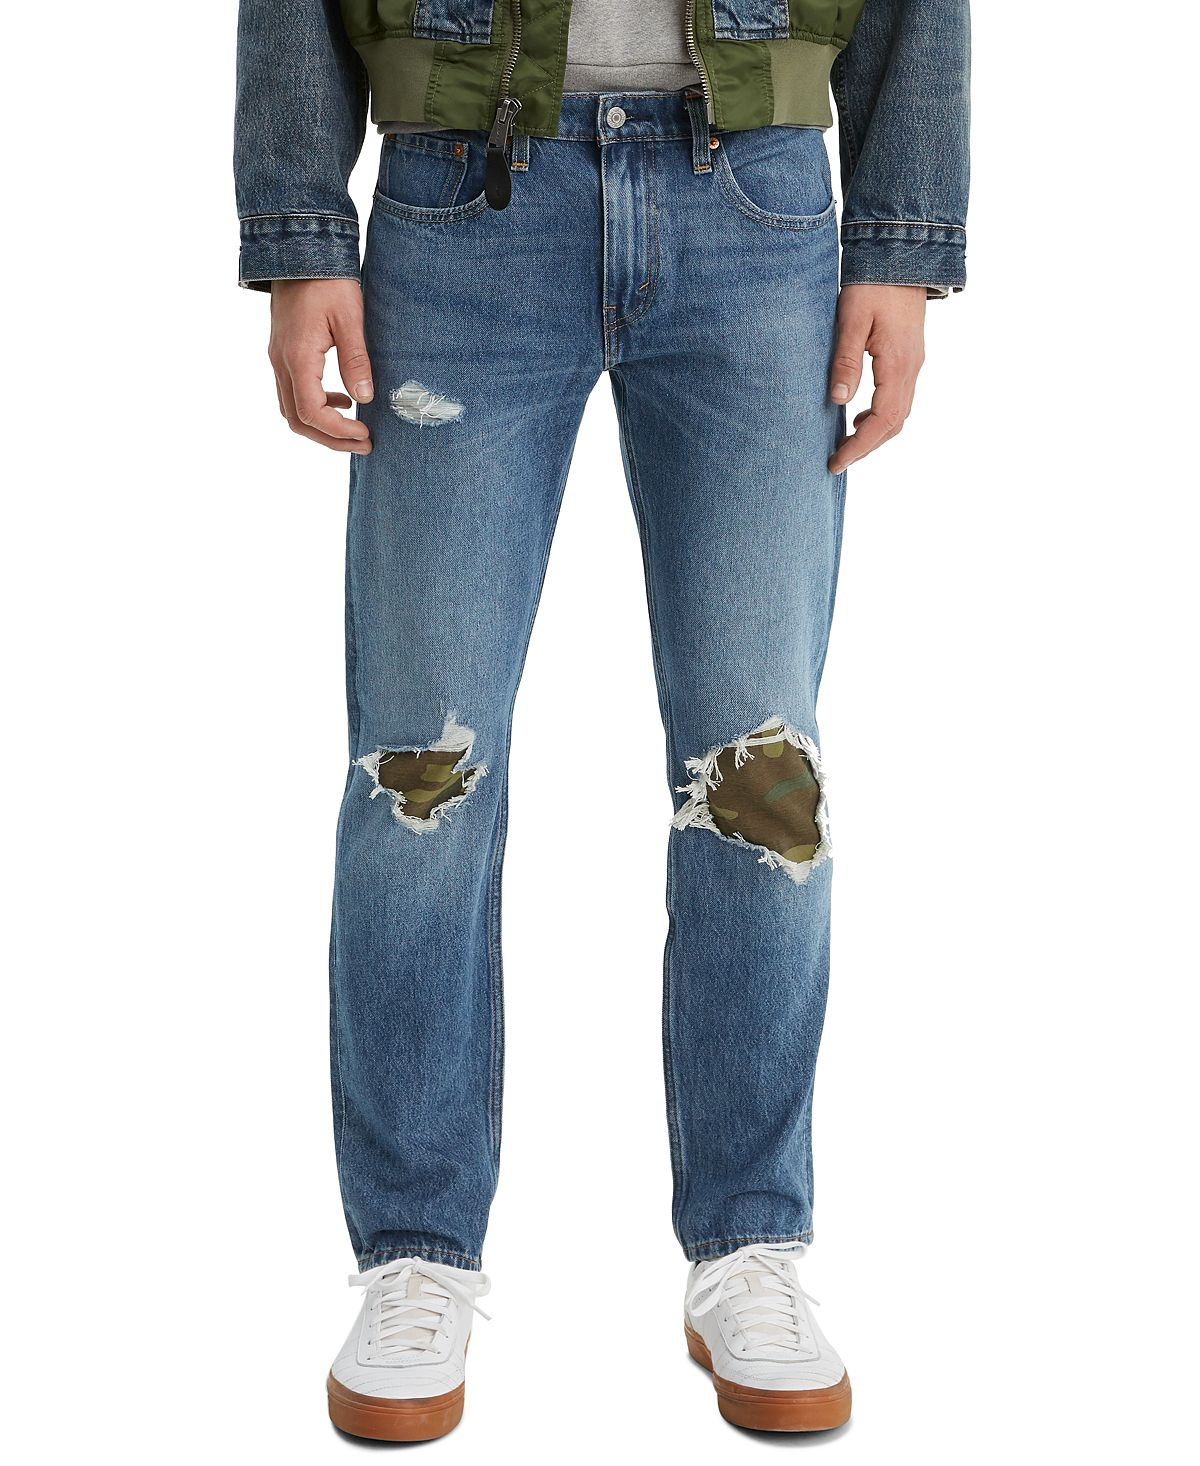 Levi's 502 Tapered Fit Ripped With Camo Print Repair Jeans E Collins